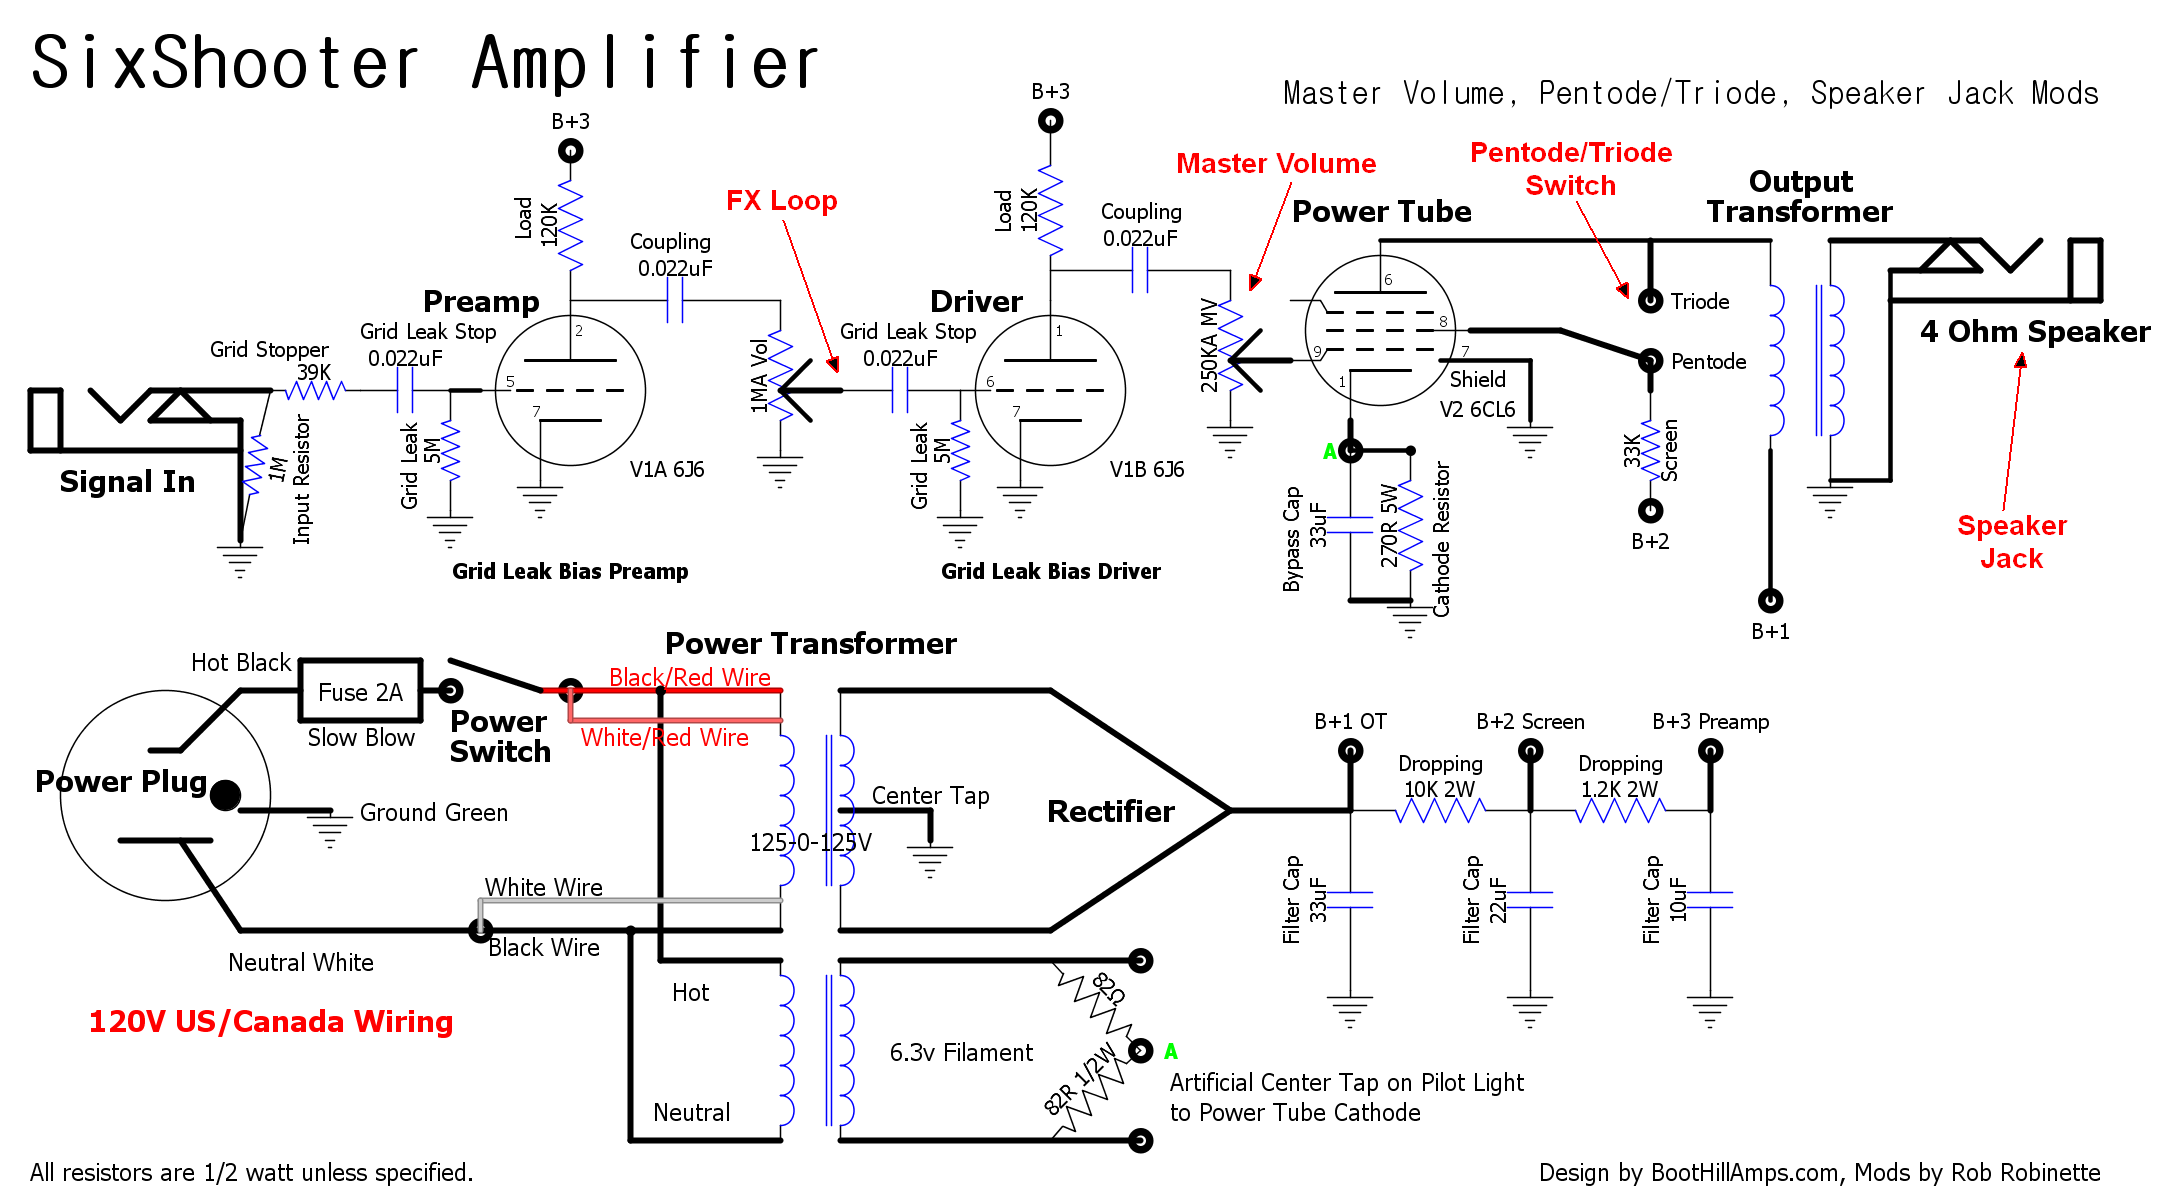 sixshooter the fx loop jacks aren t shown on the schematic but they go between the volume pot mid terminal and coupling cap